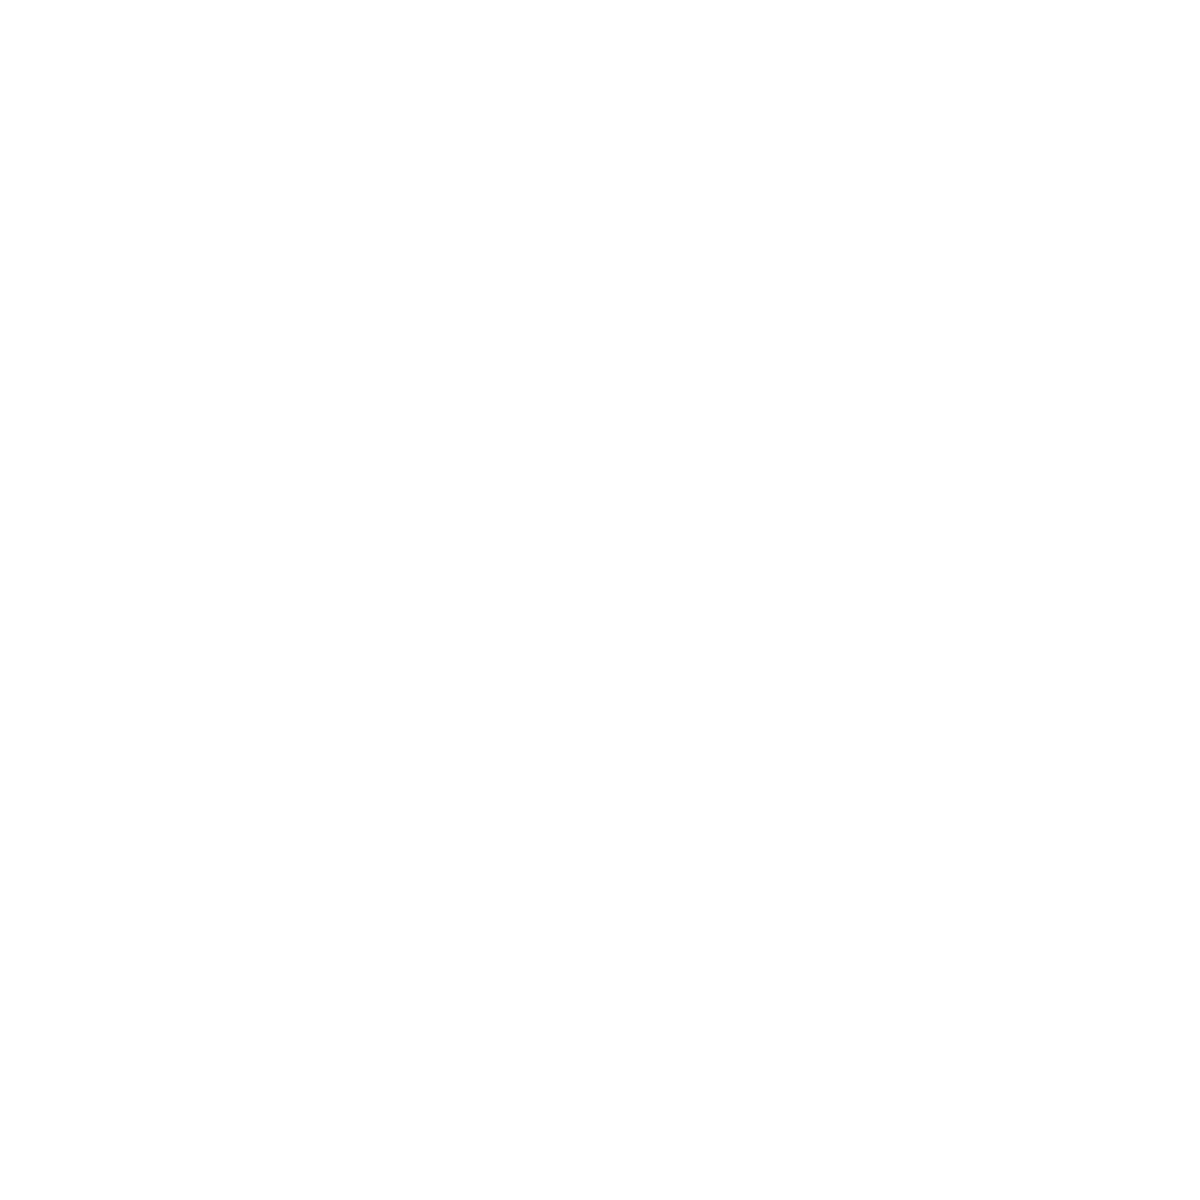 Collierville church of Christ in Collierville, TN